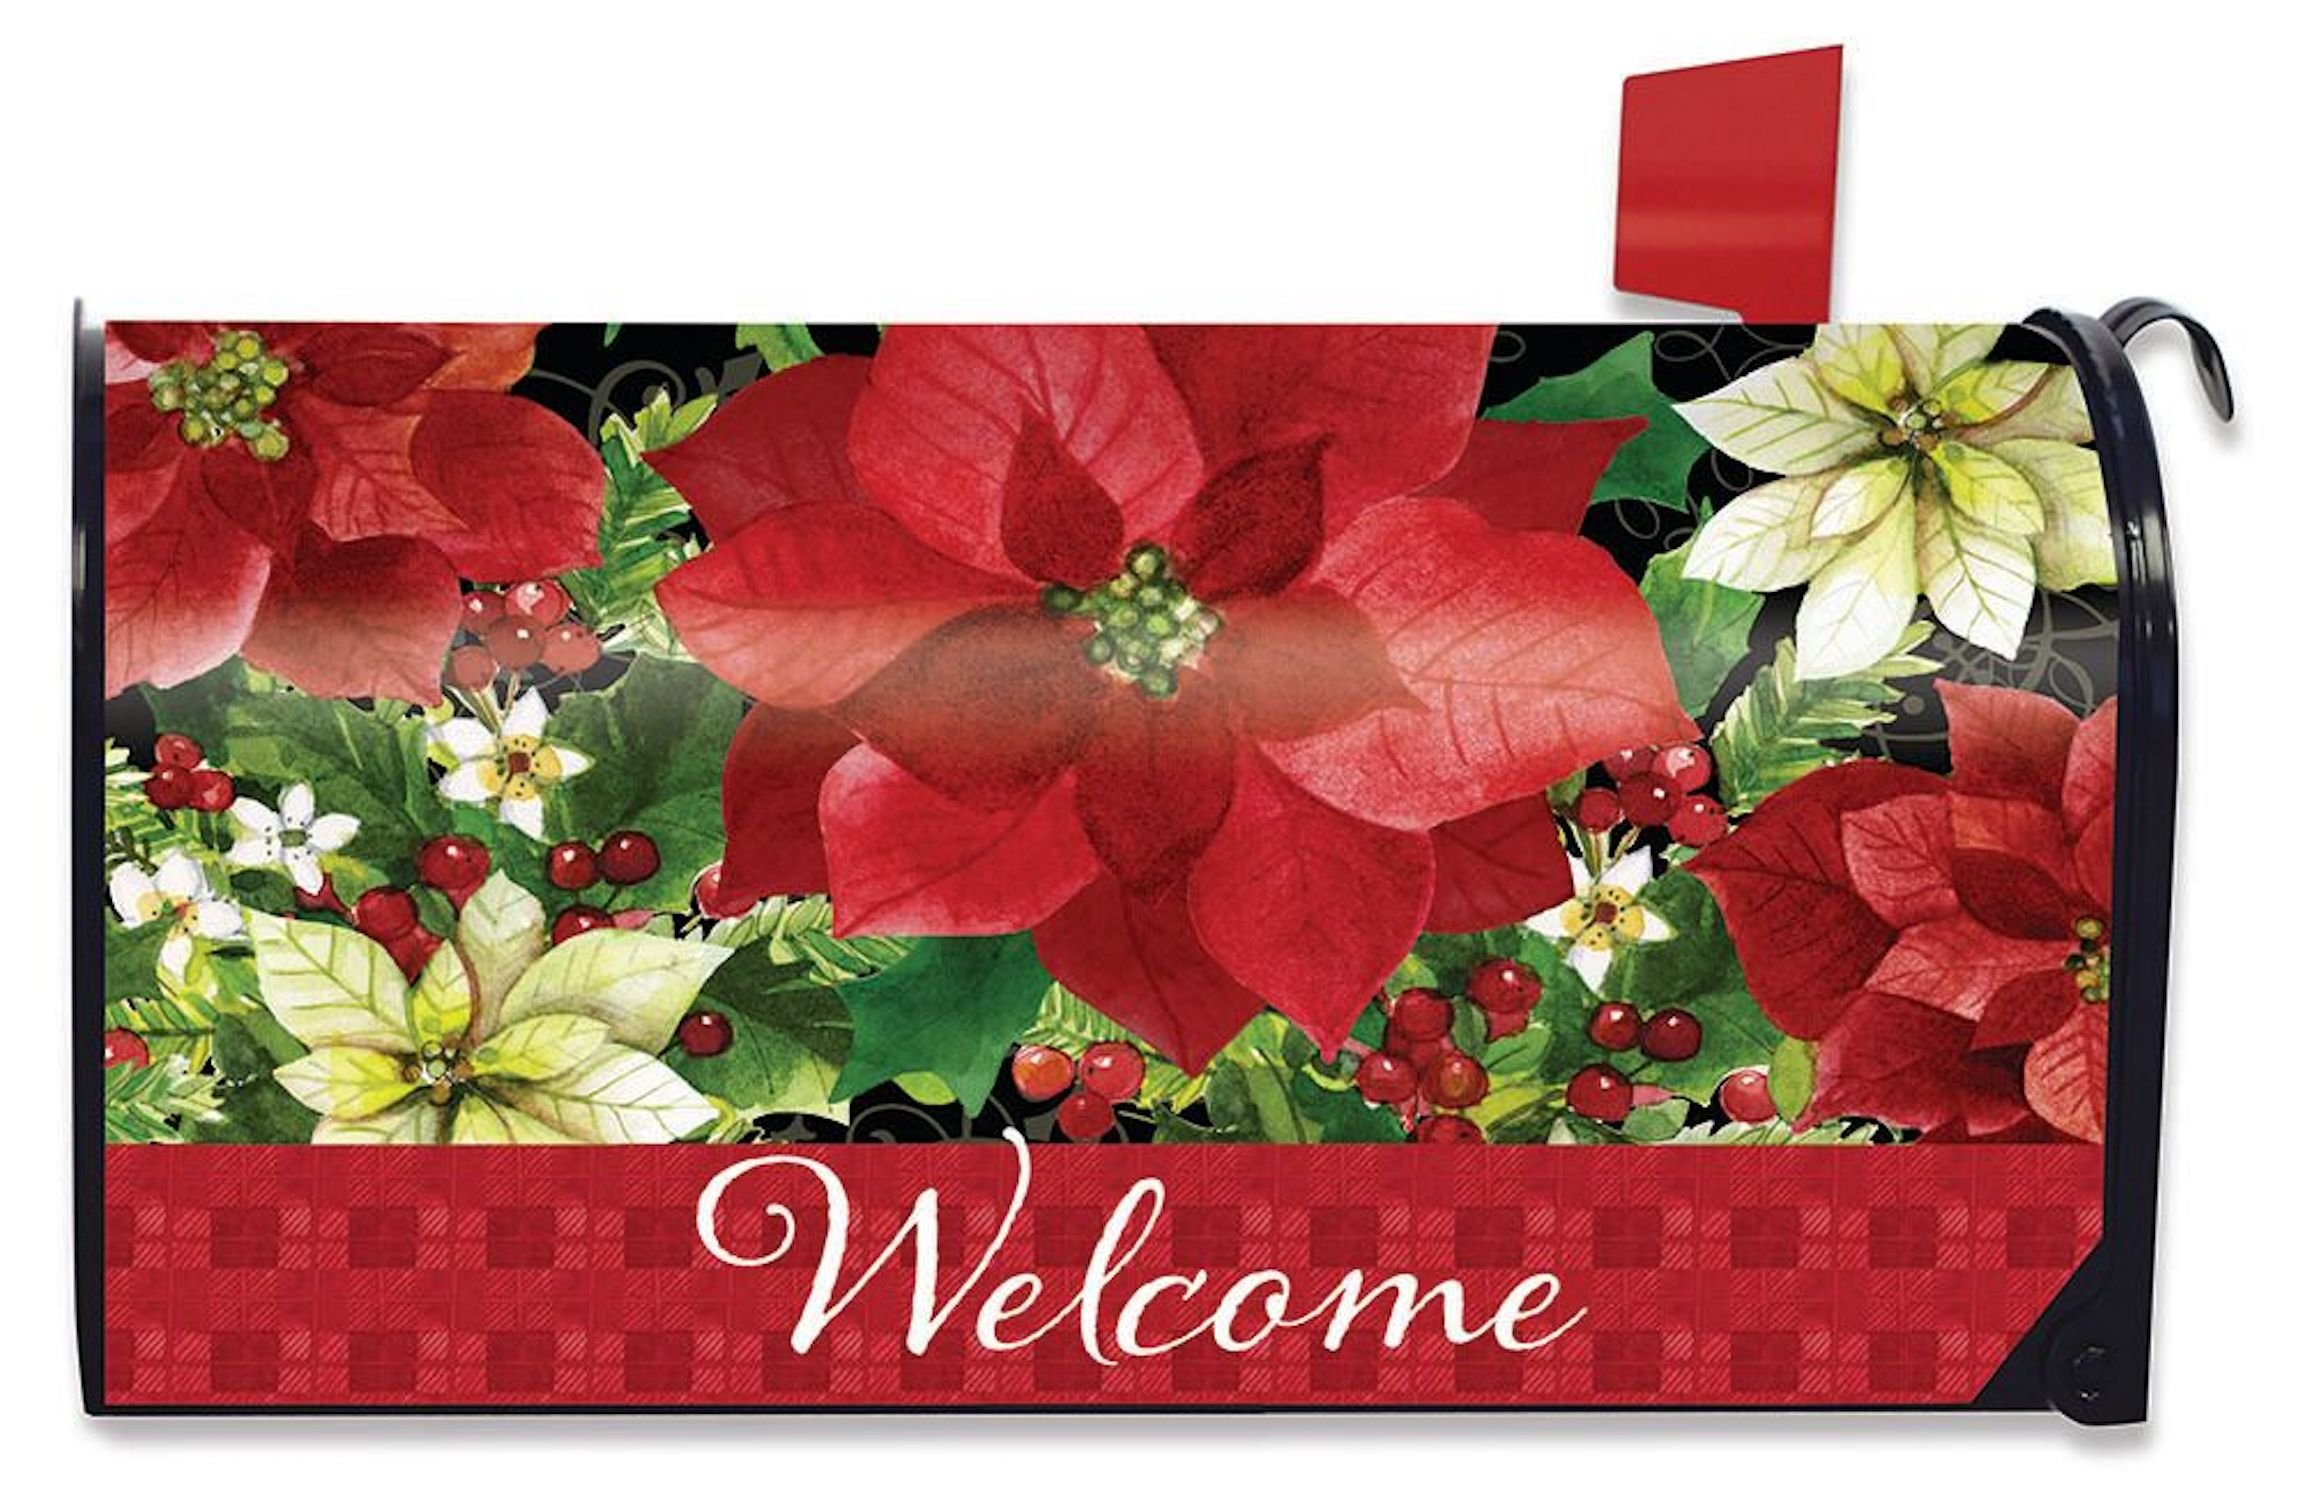 Briarwood Lane Poinsettia Welcome Christmas Mailbox Cover Floral Standard